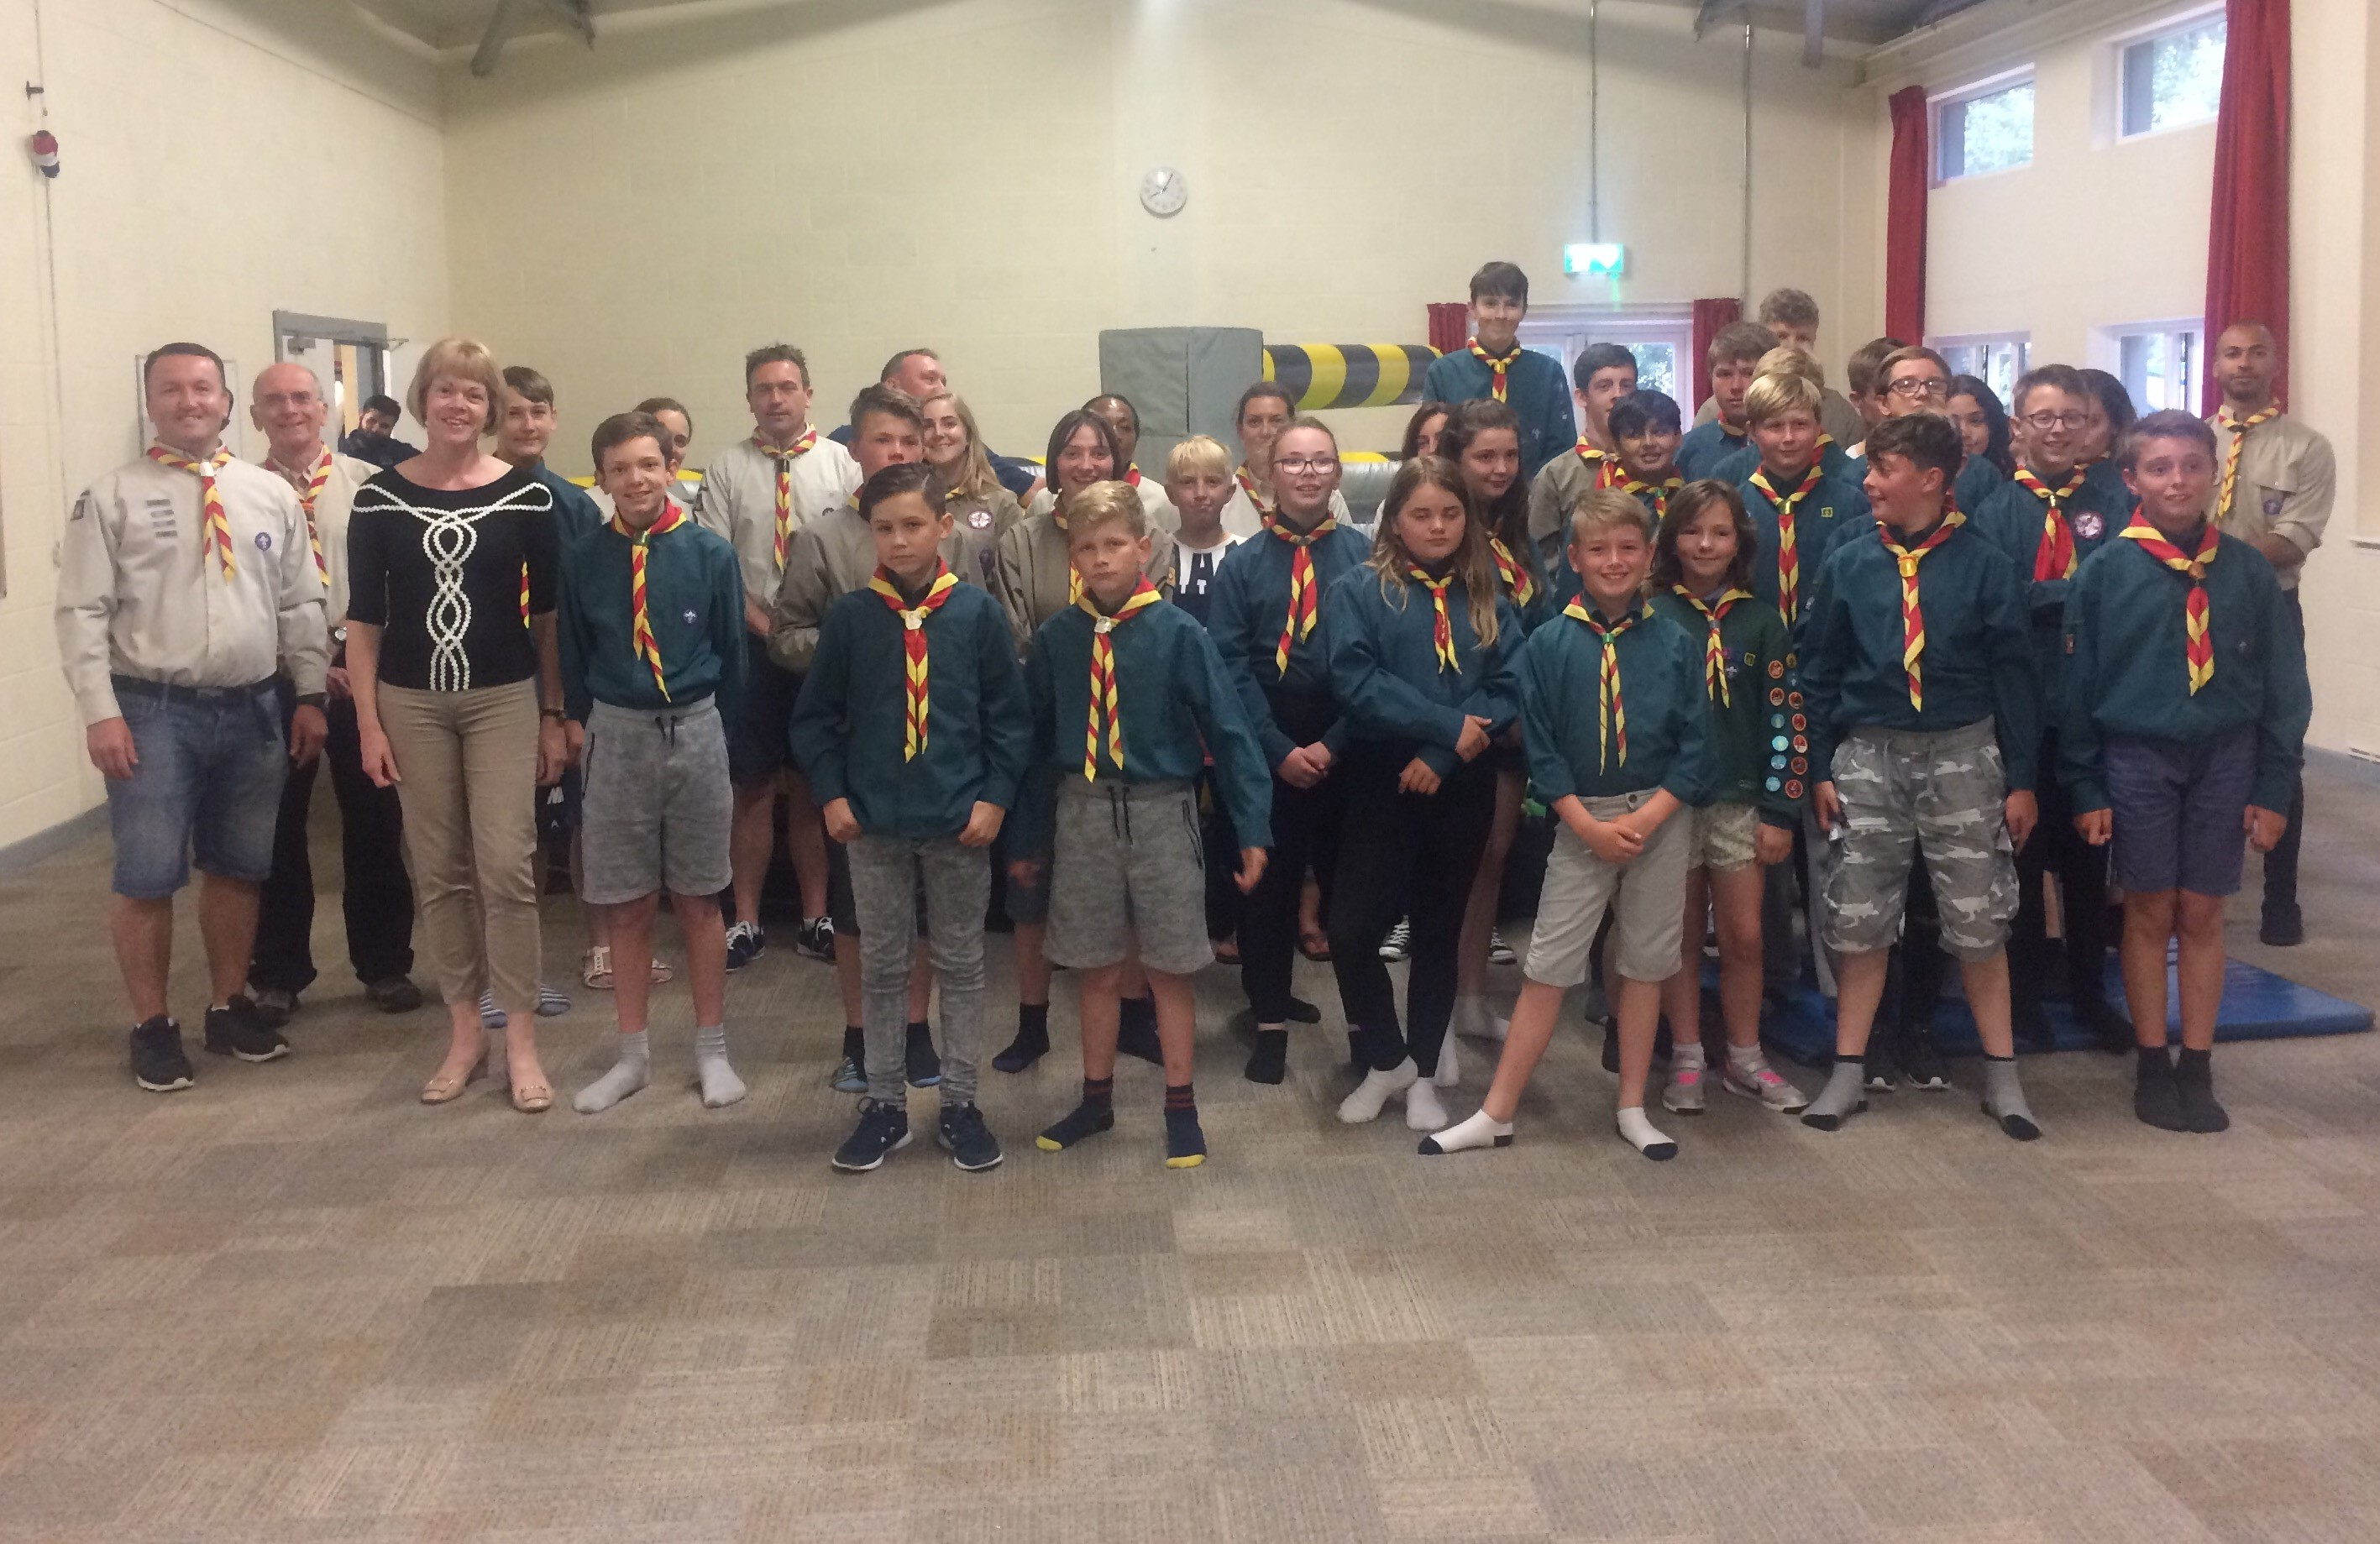 Congratulations to 31st Sutton Coldfield West Scouts in Streetly